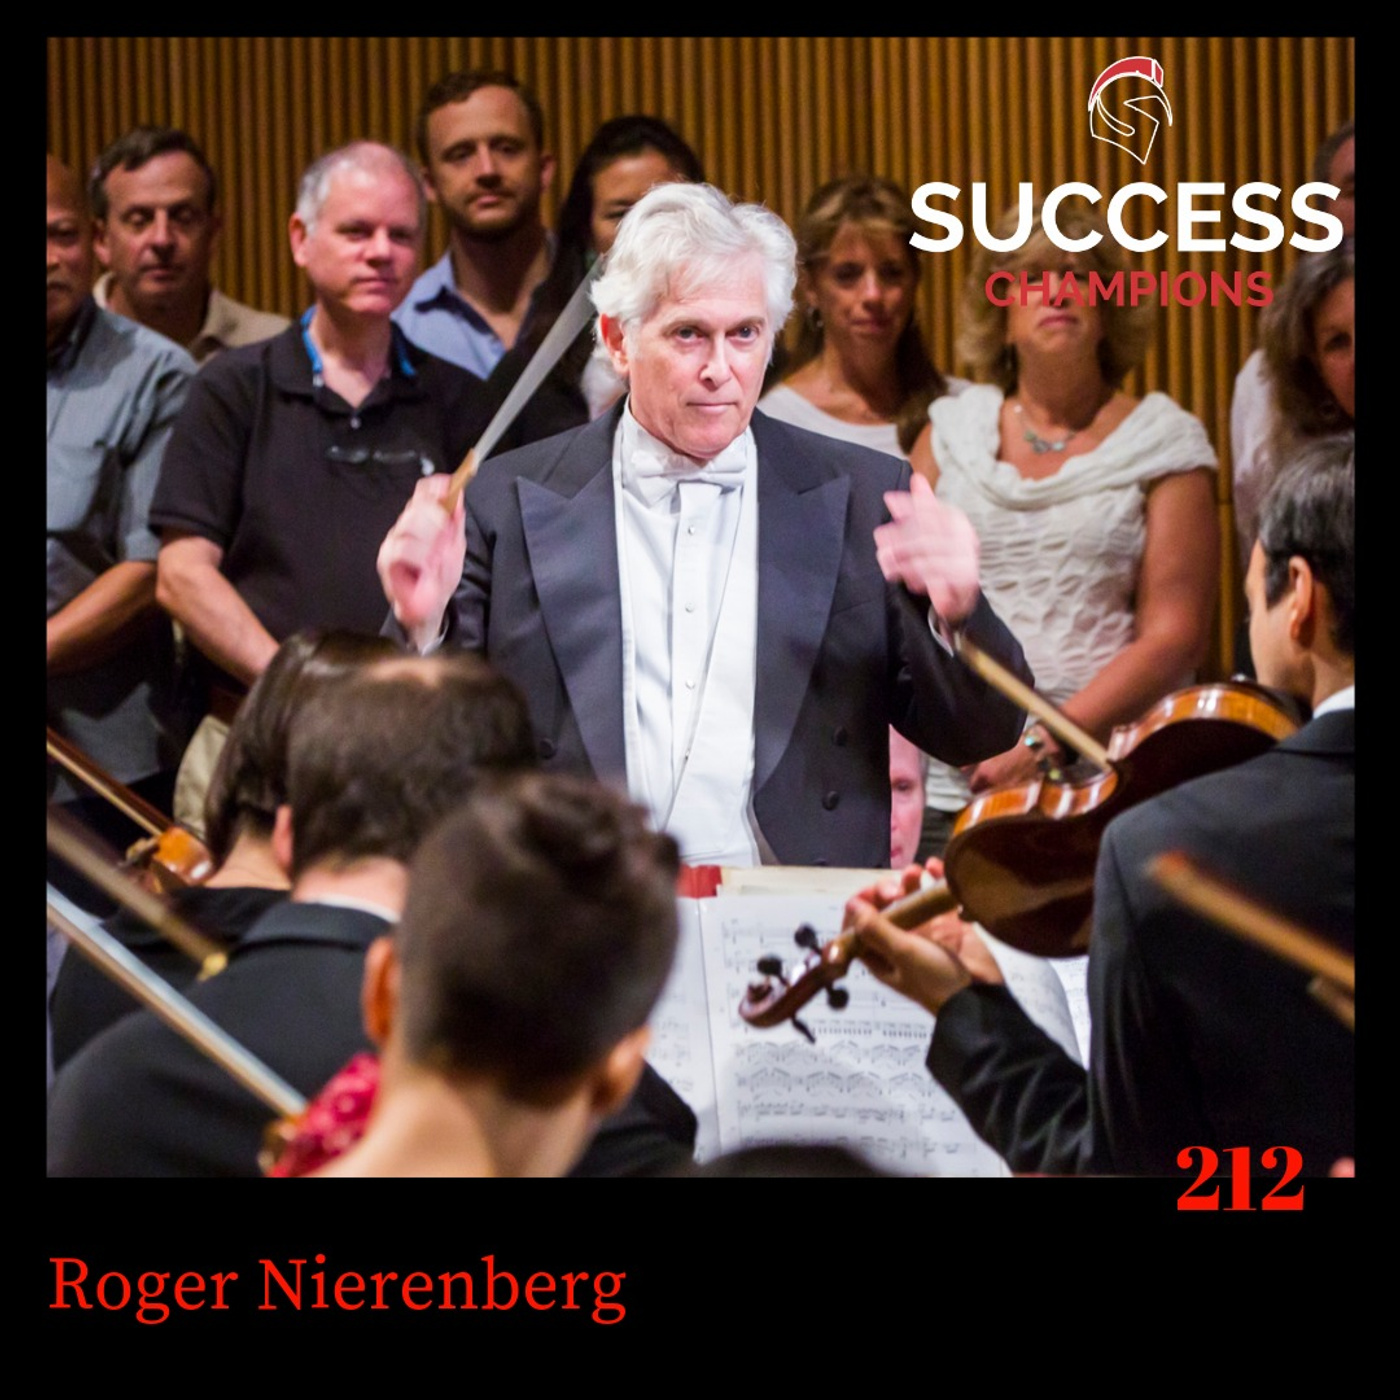 Roger Nierenberg: Symphony of Construction